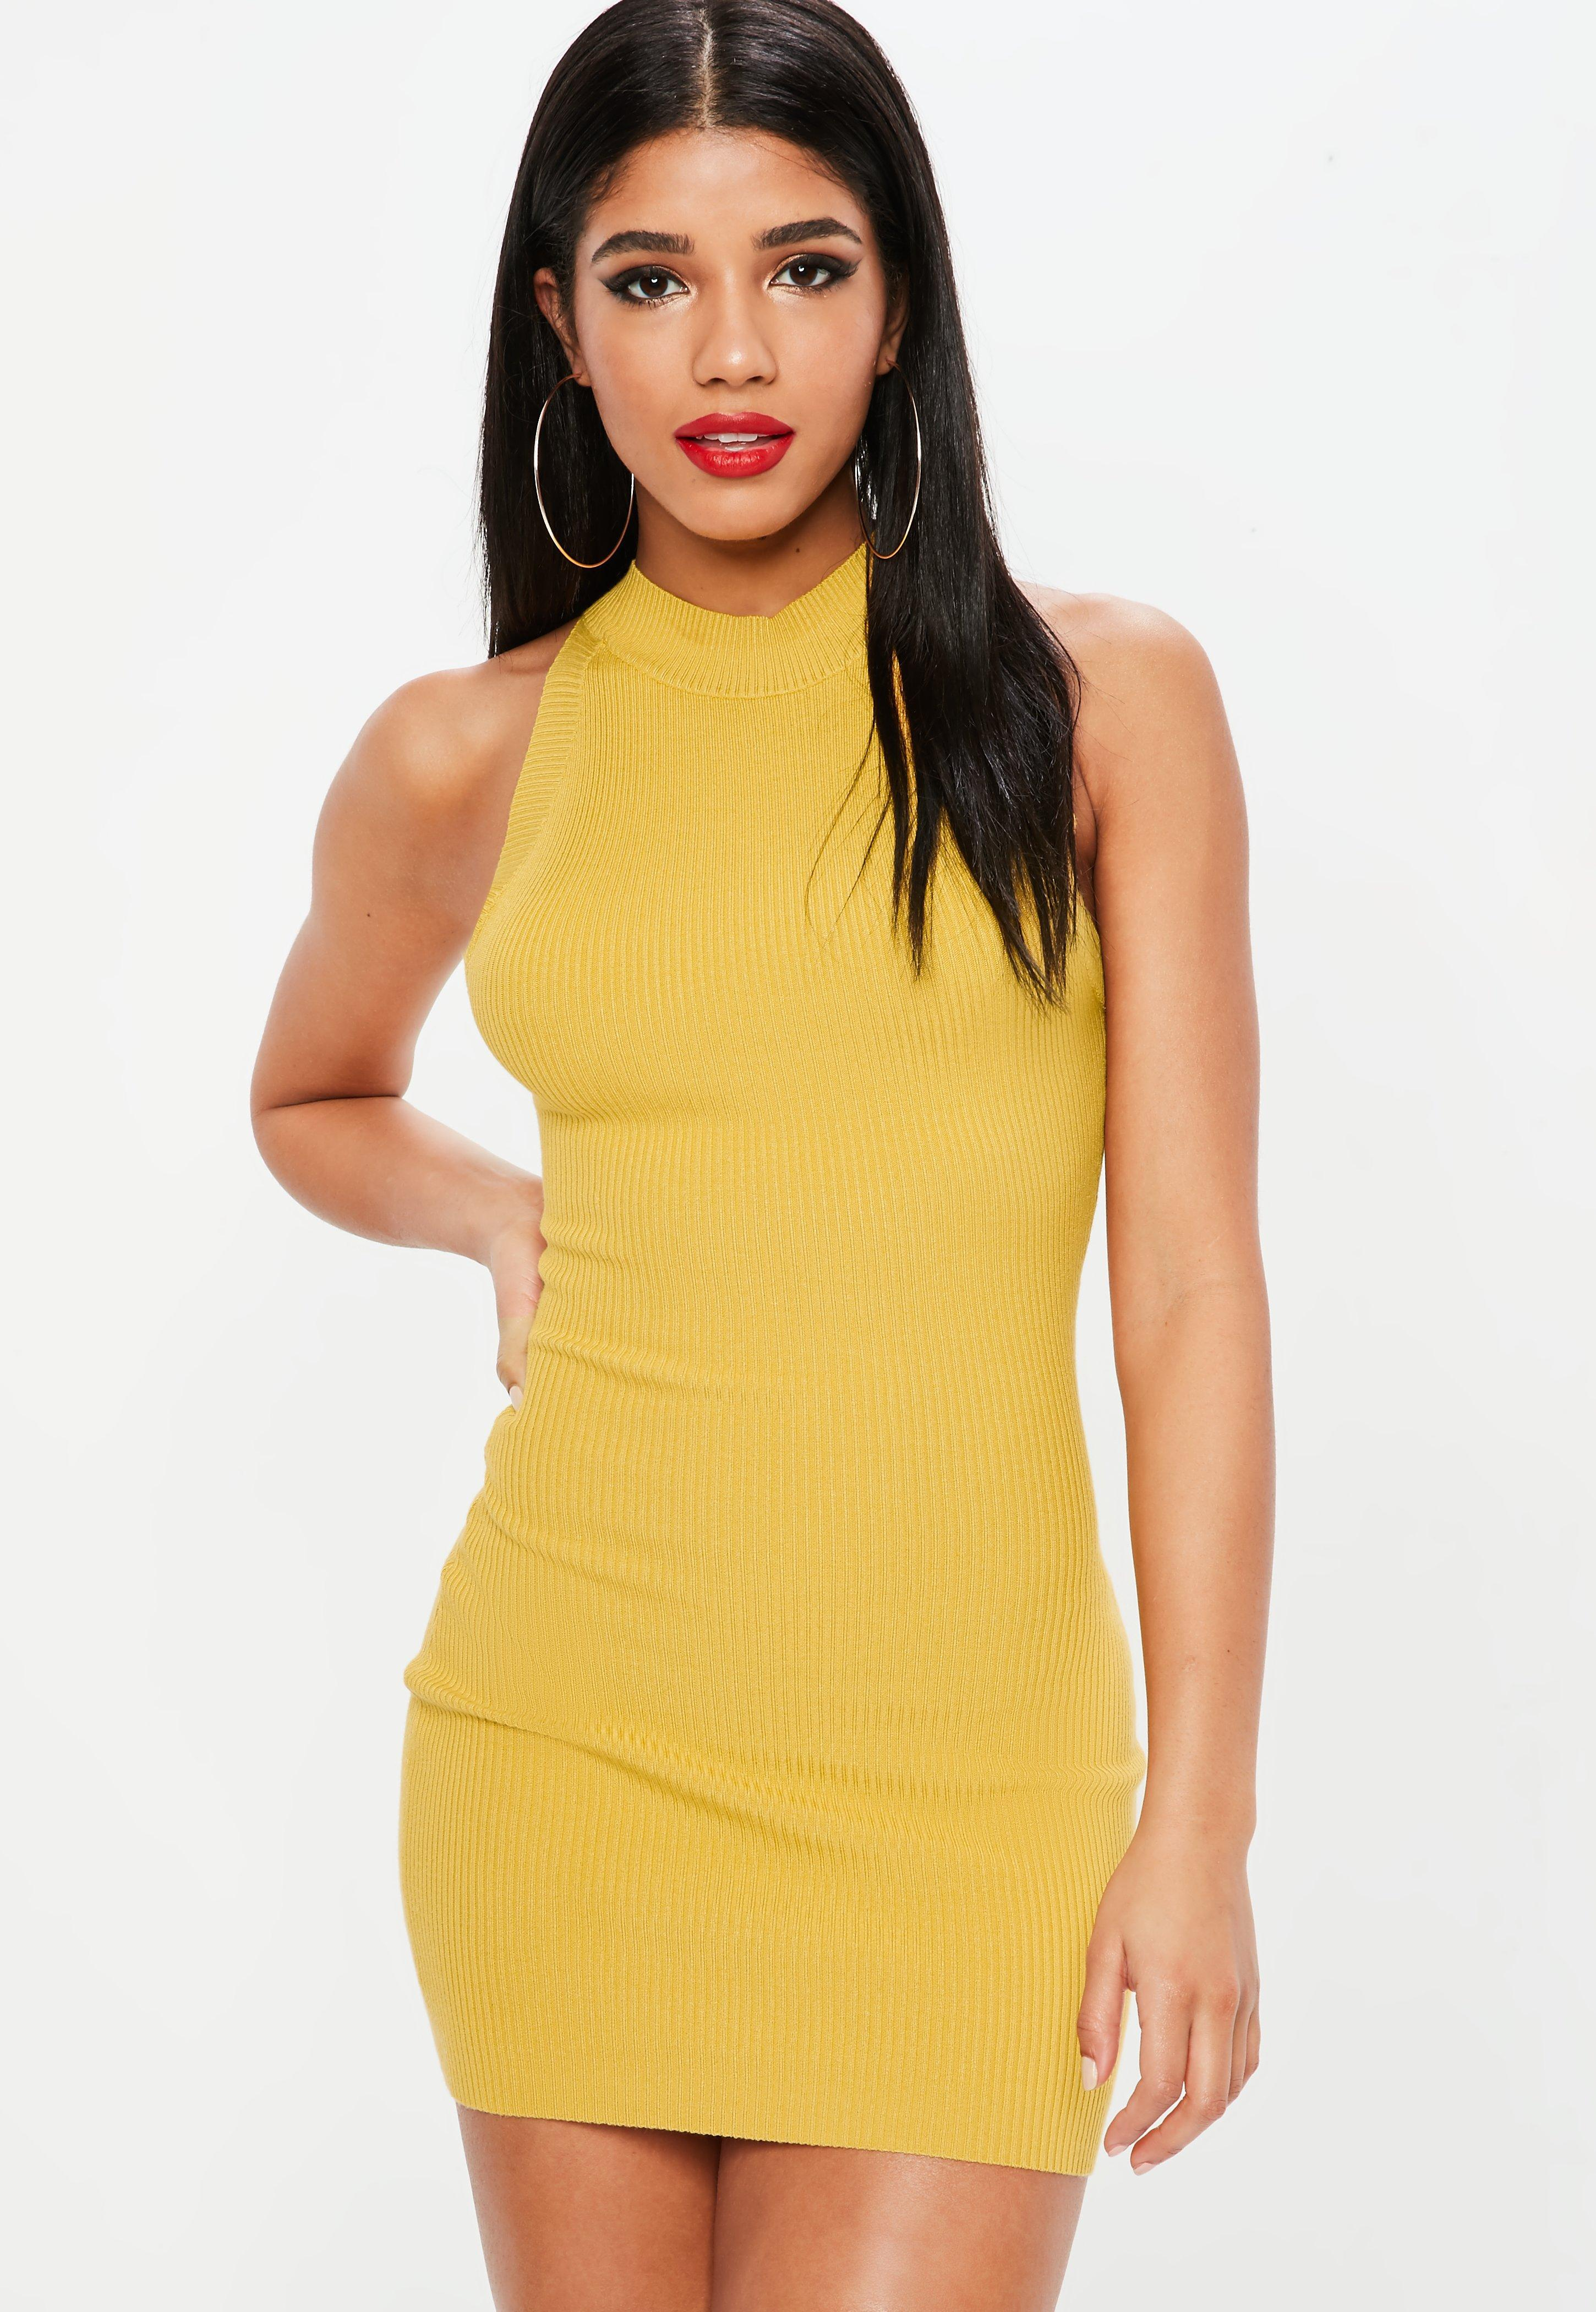 b9c51e7186 Lyst - Missguided Yellow High Neck Ribbed Mini Dress in Yellow